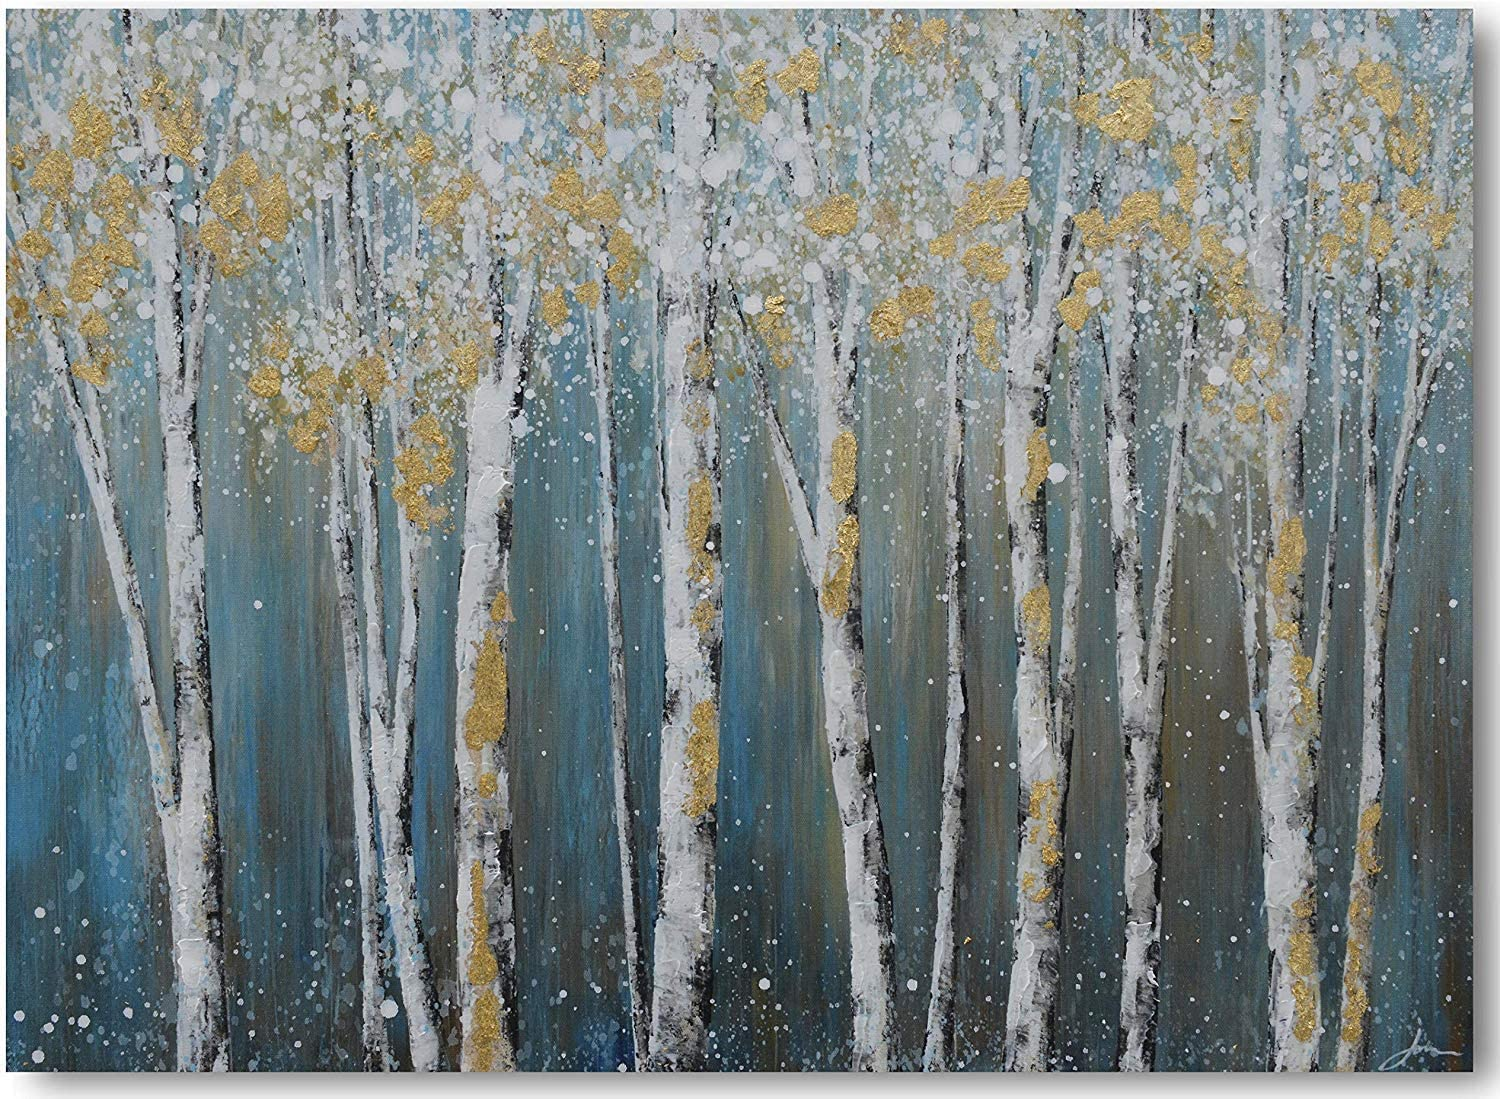 Yihui Arts Birch Tree Canvas Wall Art Hand Painted Teal and White Color Painting with Gold Foil Modern Forest Pictures for Living Room Bedroom Office Decoration